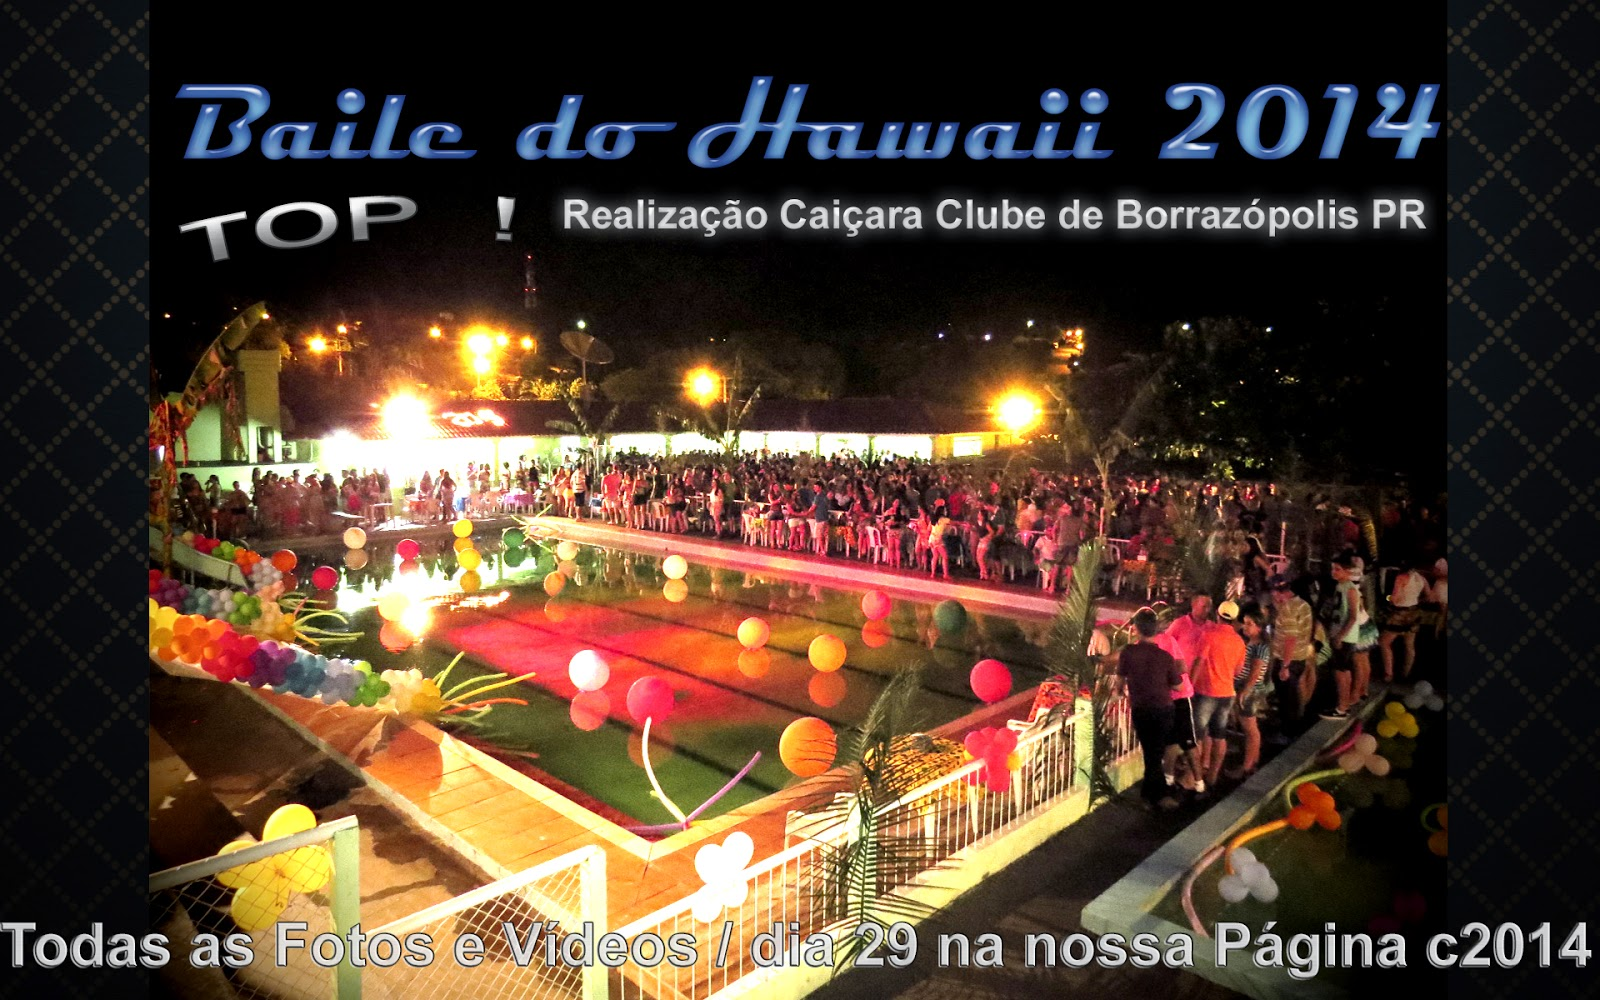 O Baile mais aguardado do Ano em Borrazópolis! , Baile do Hawaii 2014